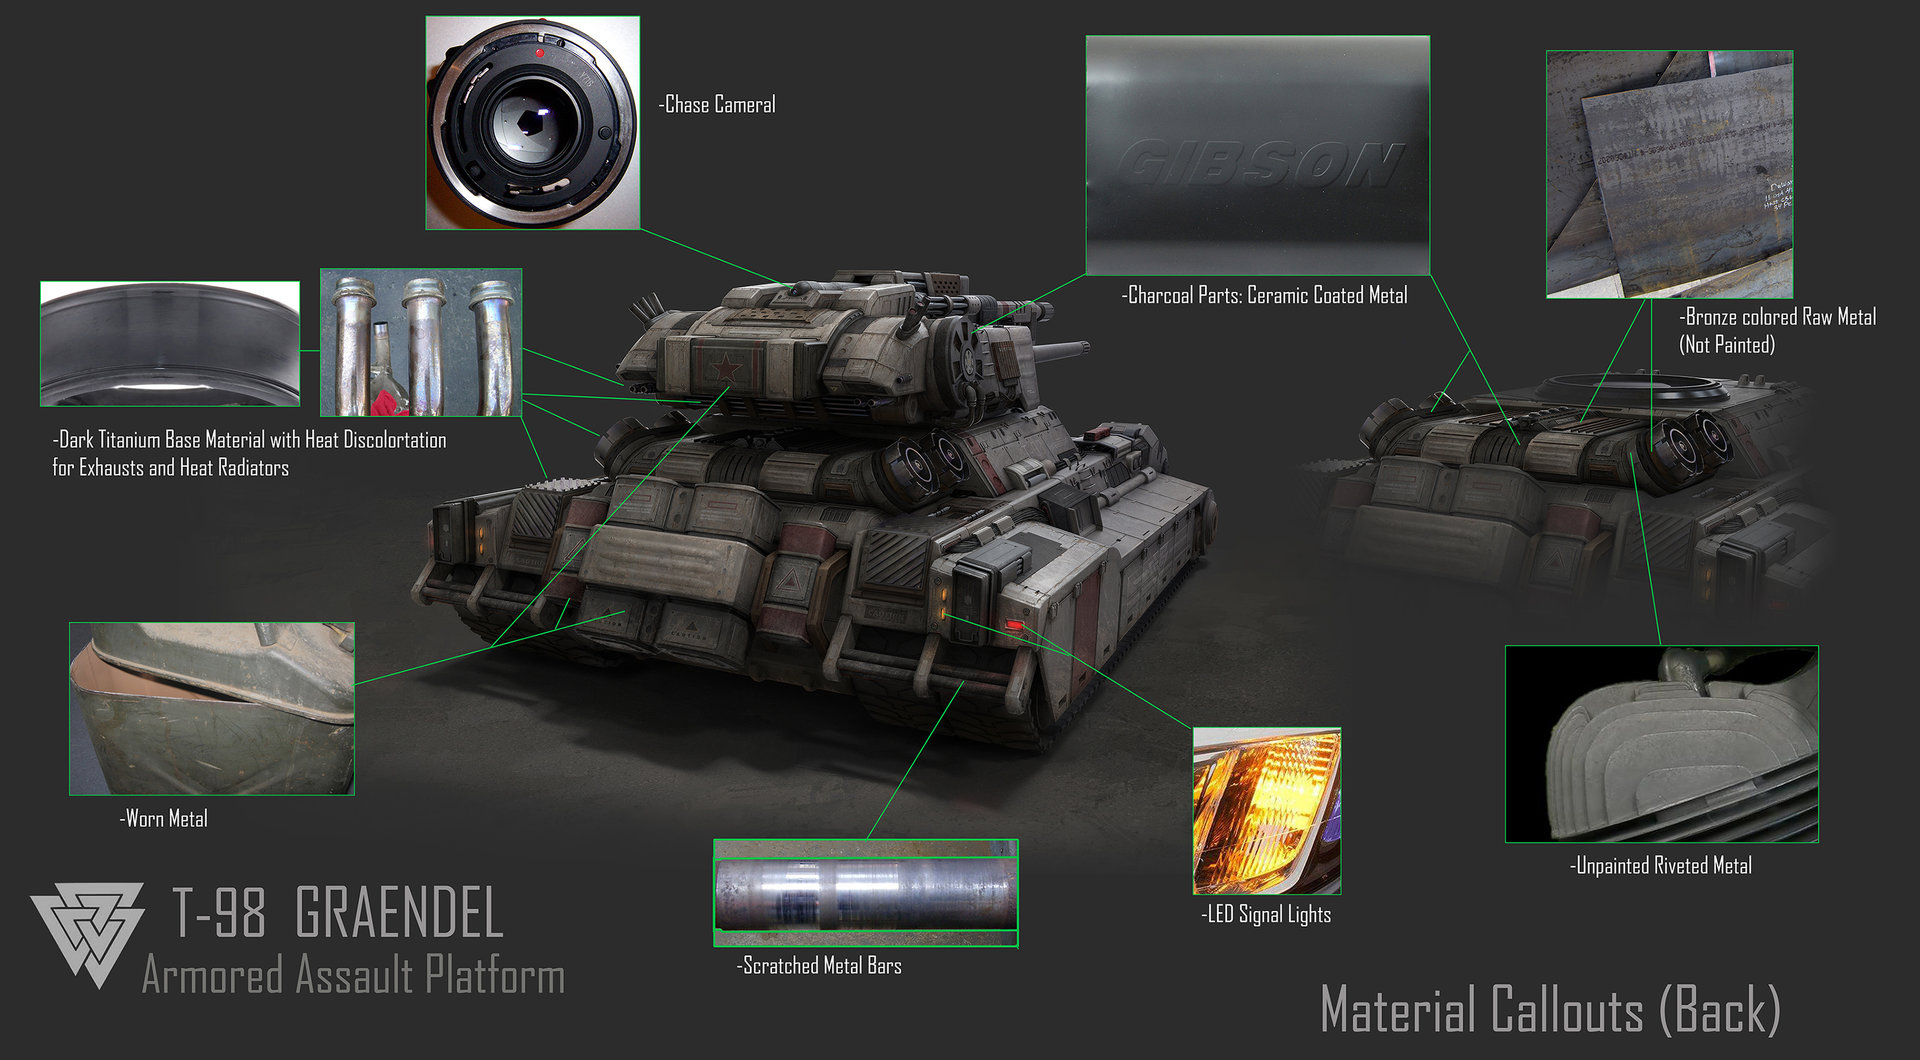 Muyoung kim 8 armor graendal back material callouts